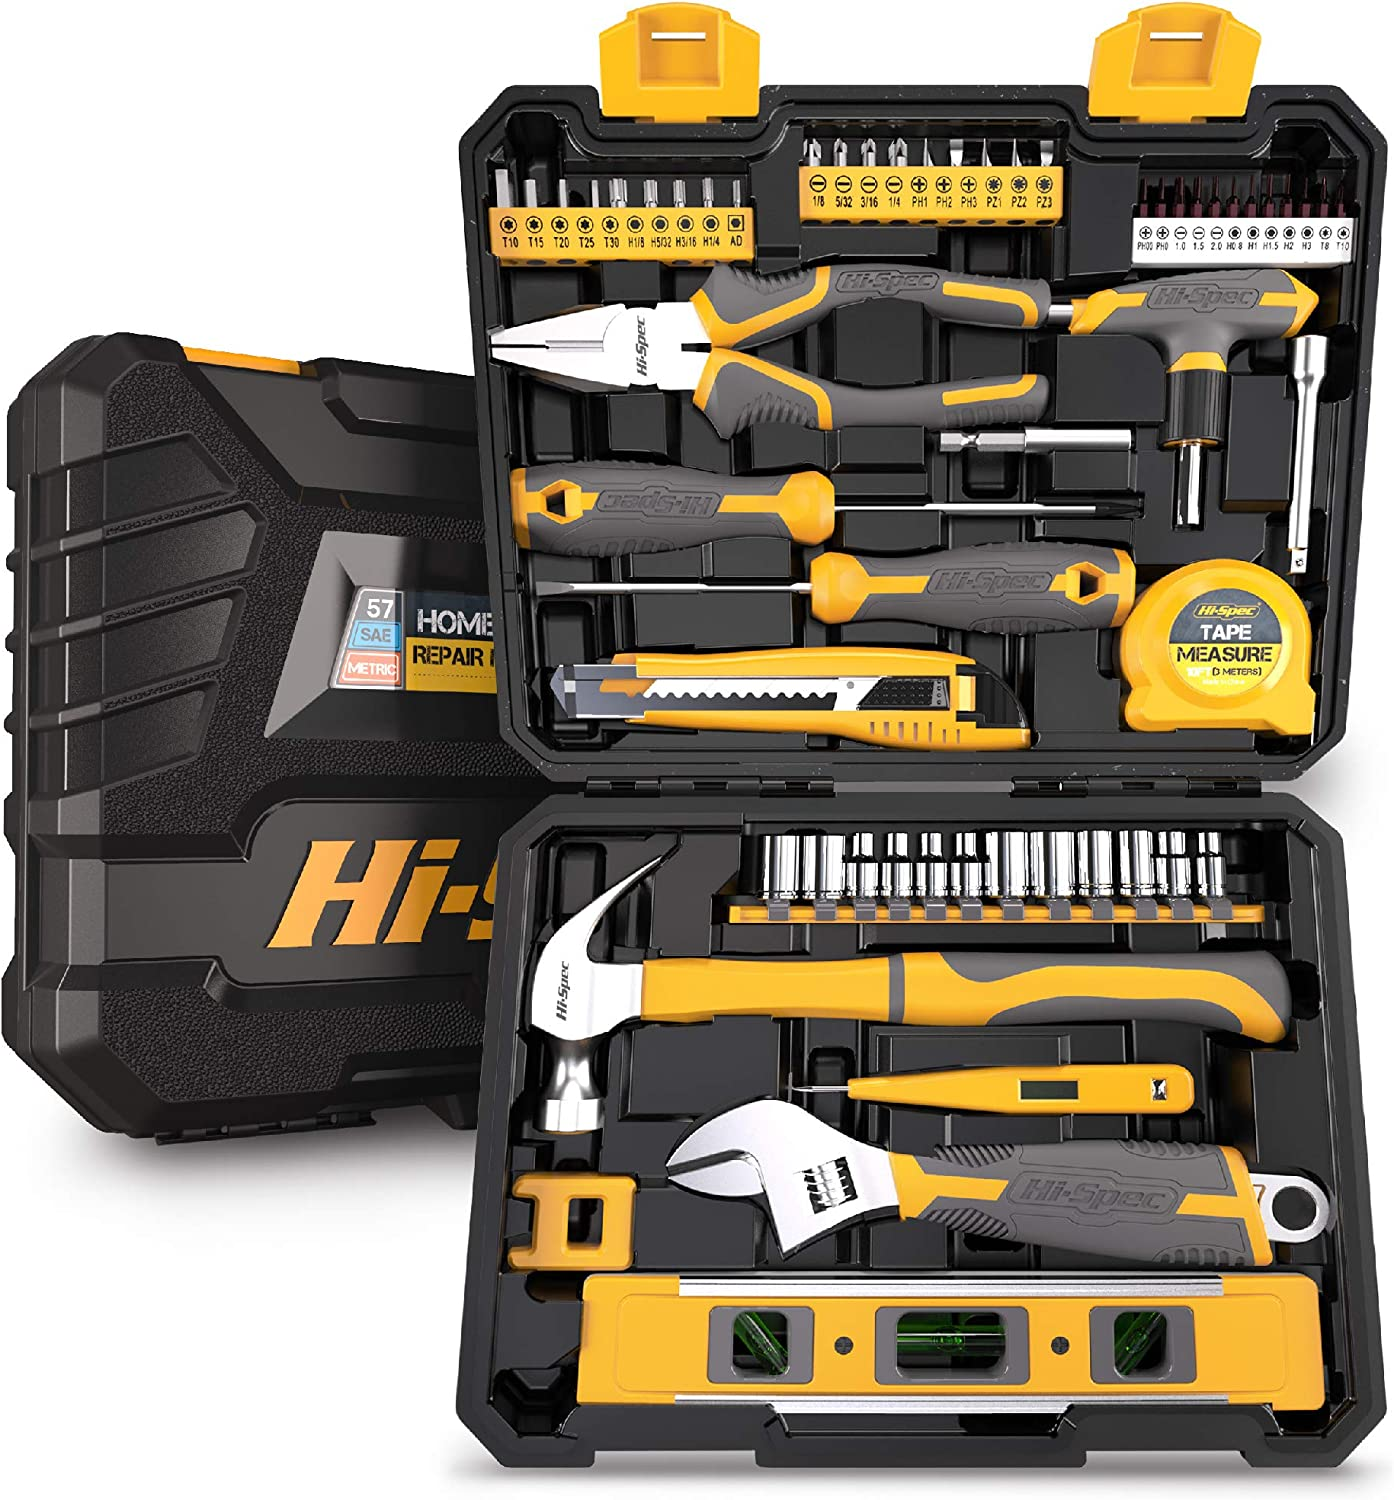 Hi-Spec 57 Piece Home & Garage Tool Kit Set. Full Set of Complete Repair & Maintenance Hand Tools for the Household, Office, Workplace & Workshop. All in a Storage Case